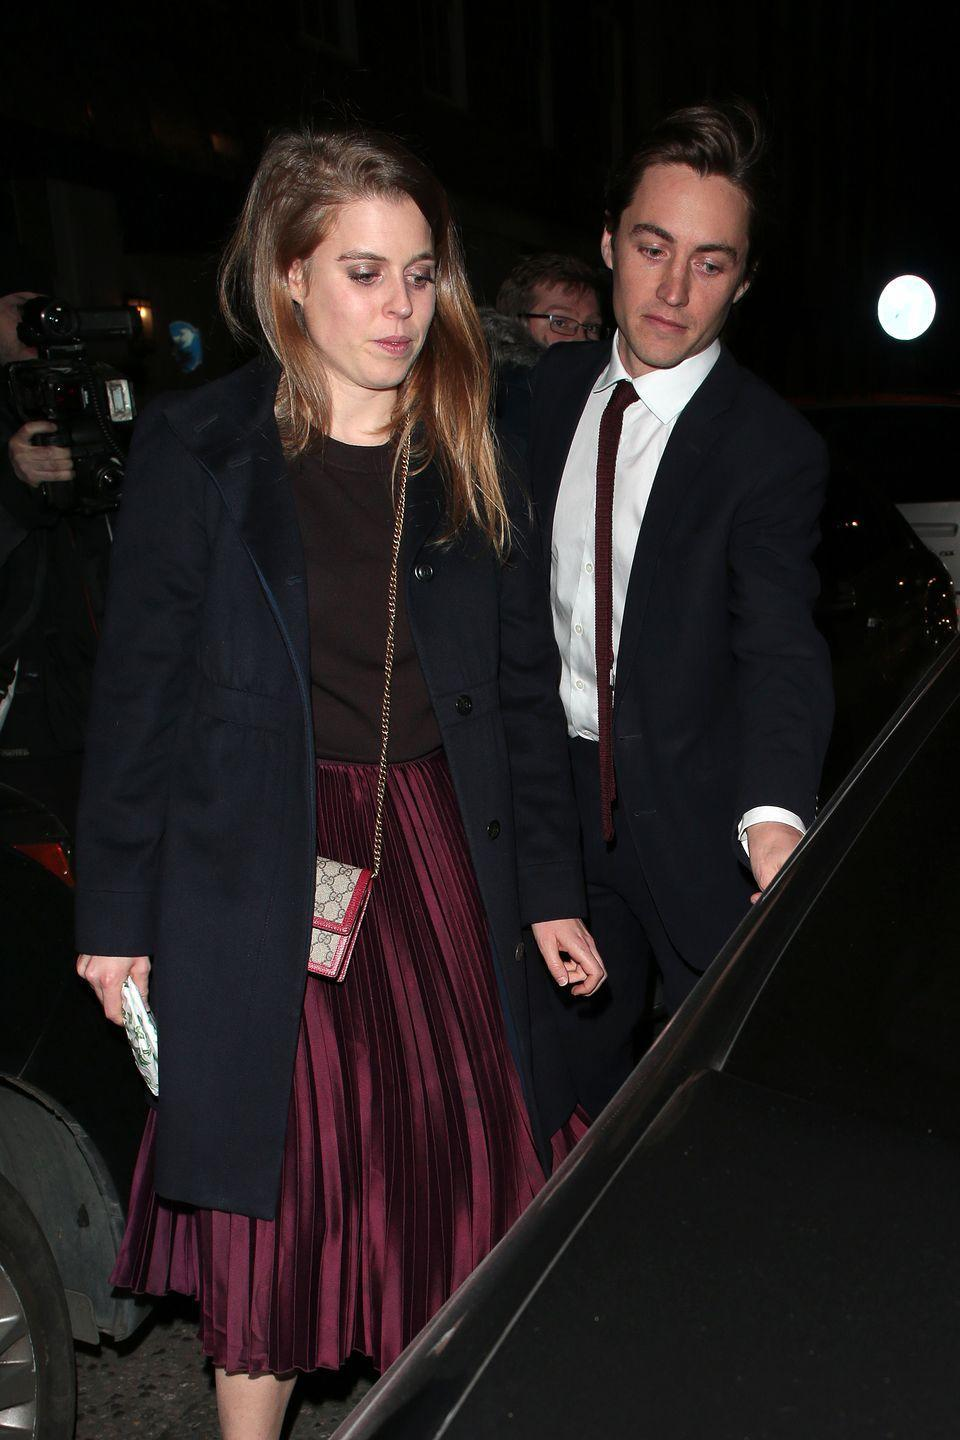 <p>Edo opened the car door for Beatrice after they shared a meal together at 34 Restaurant in London.</p>